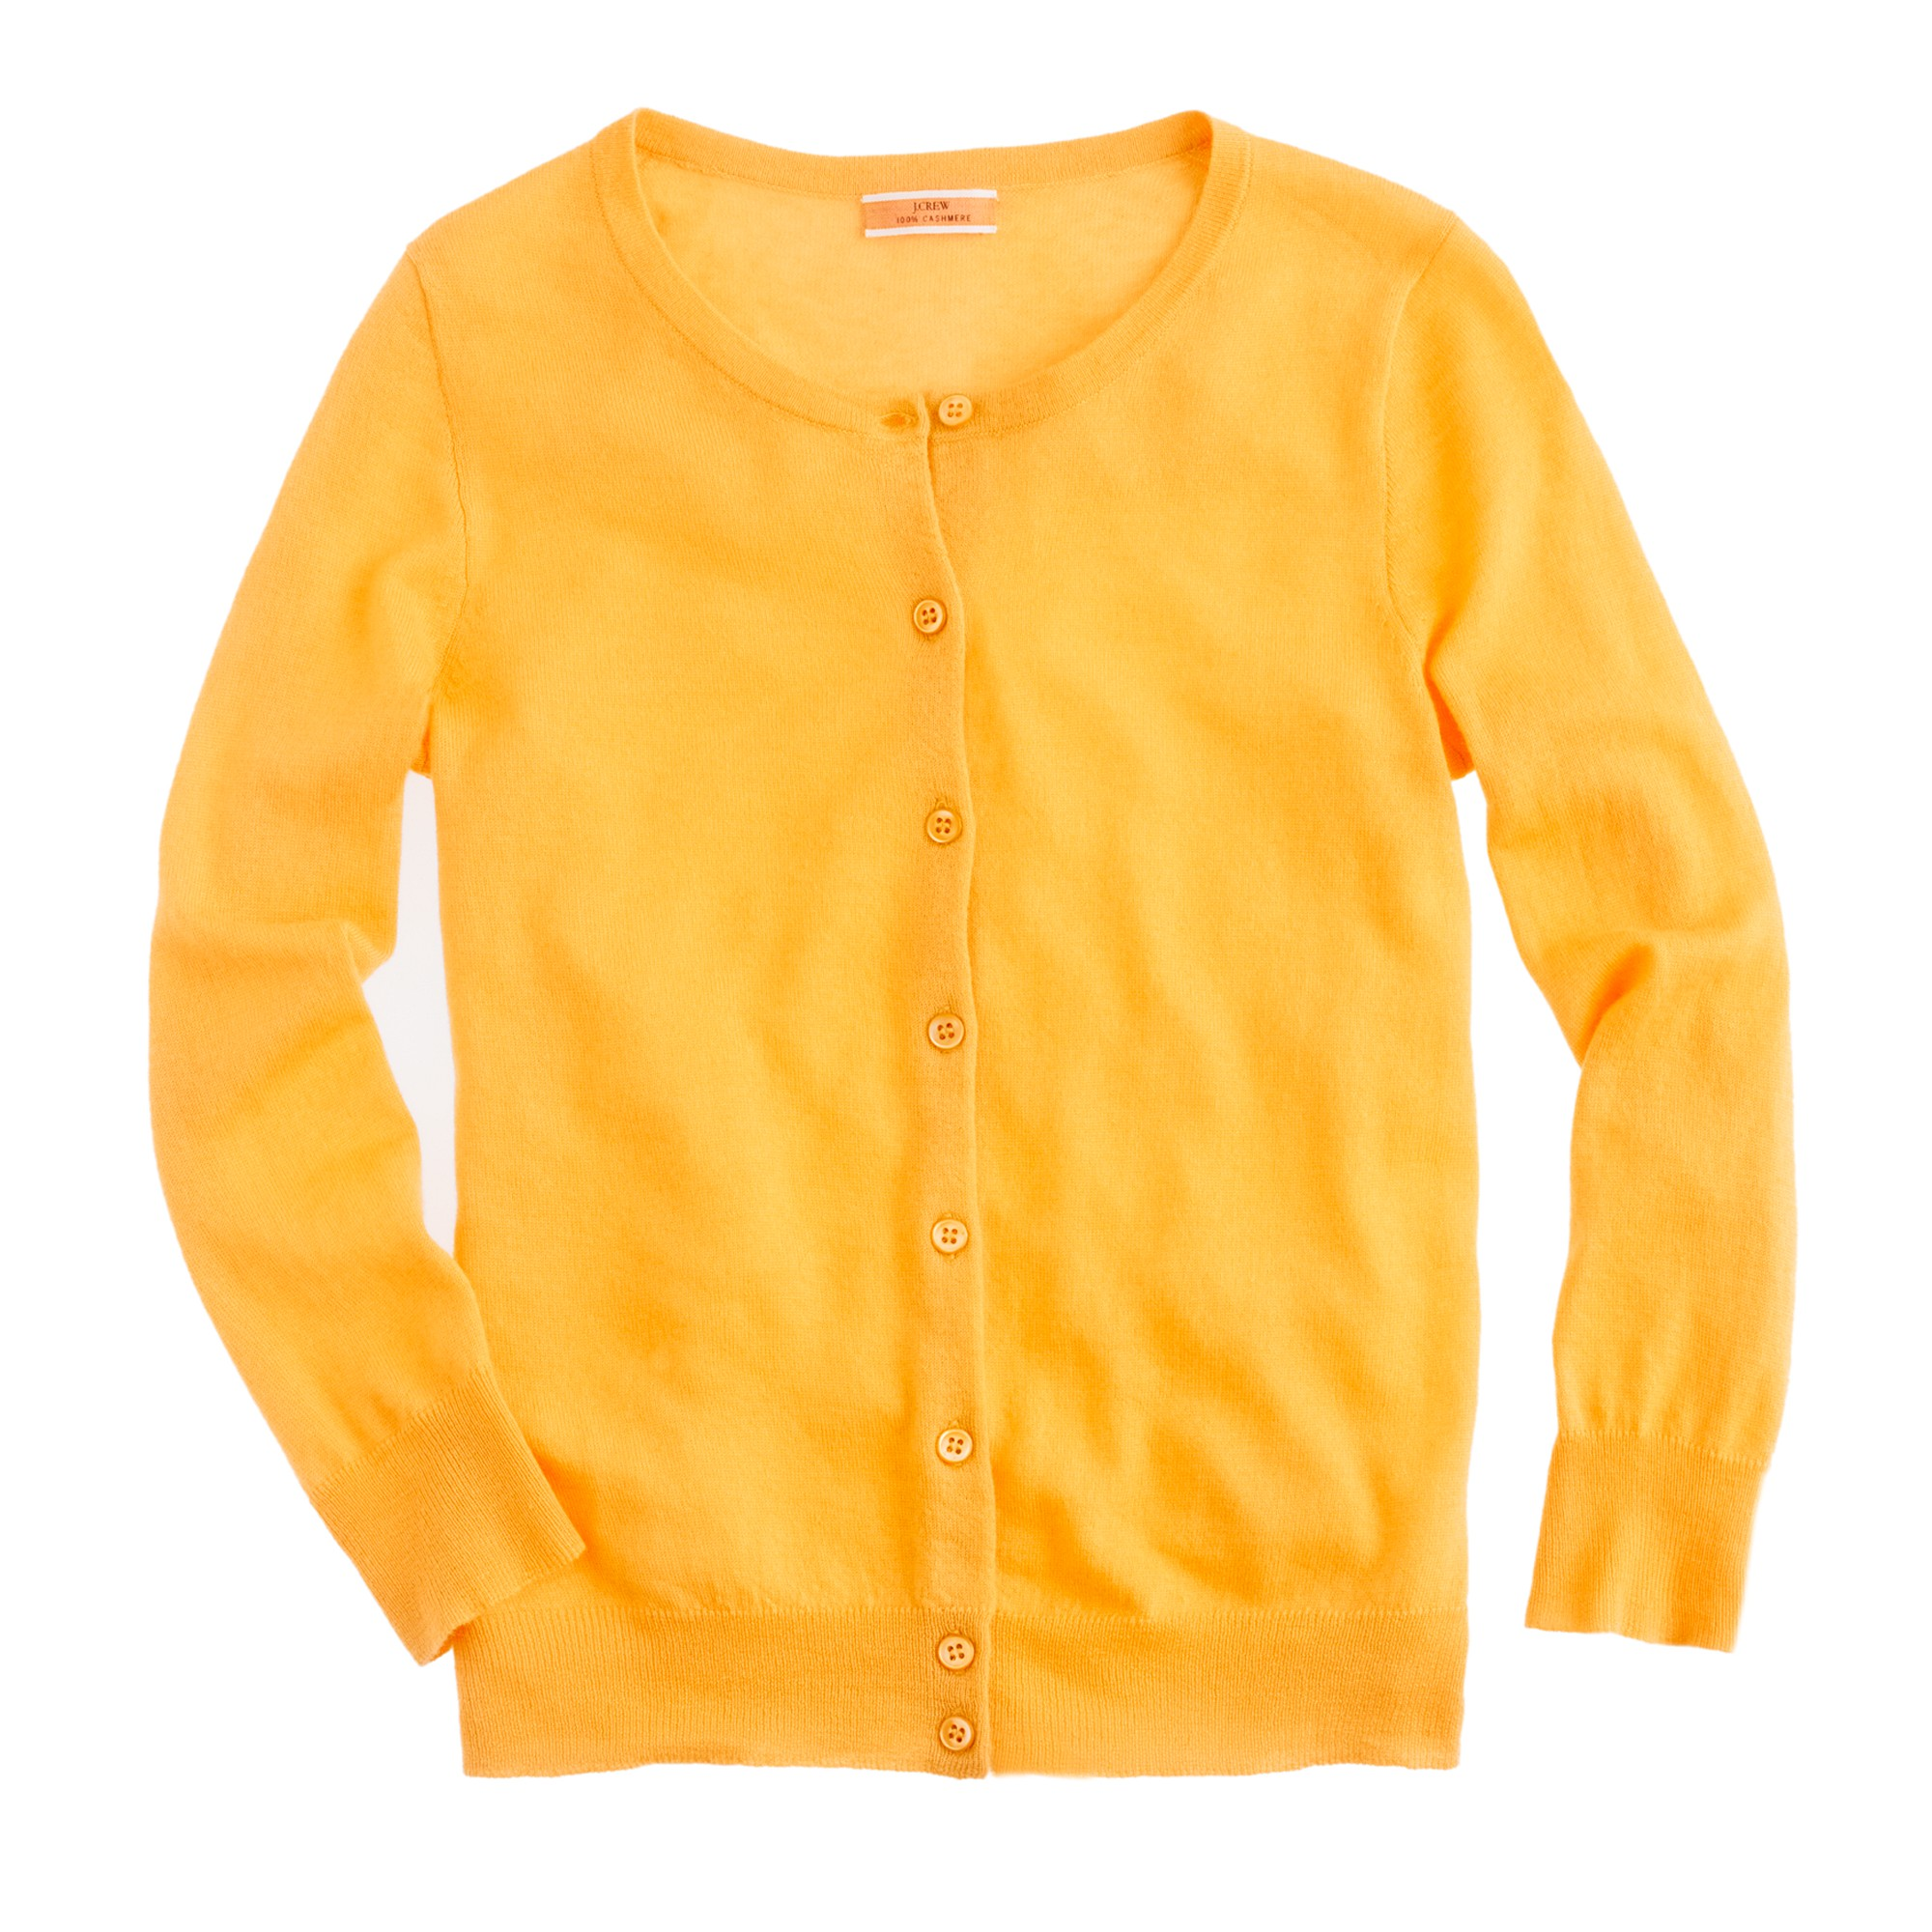 J.crew Featherweight Cashmere Cardigan in Orange | Lyst